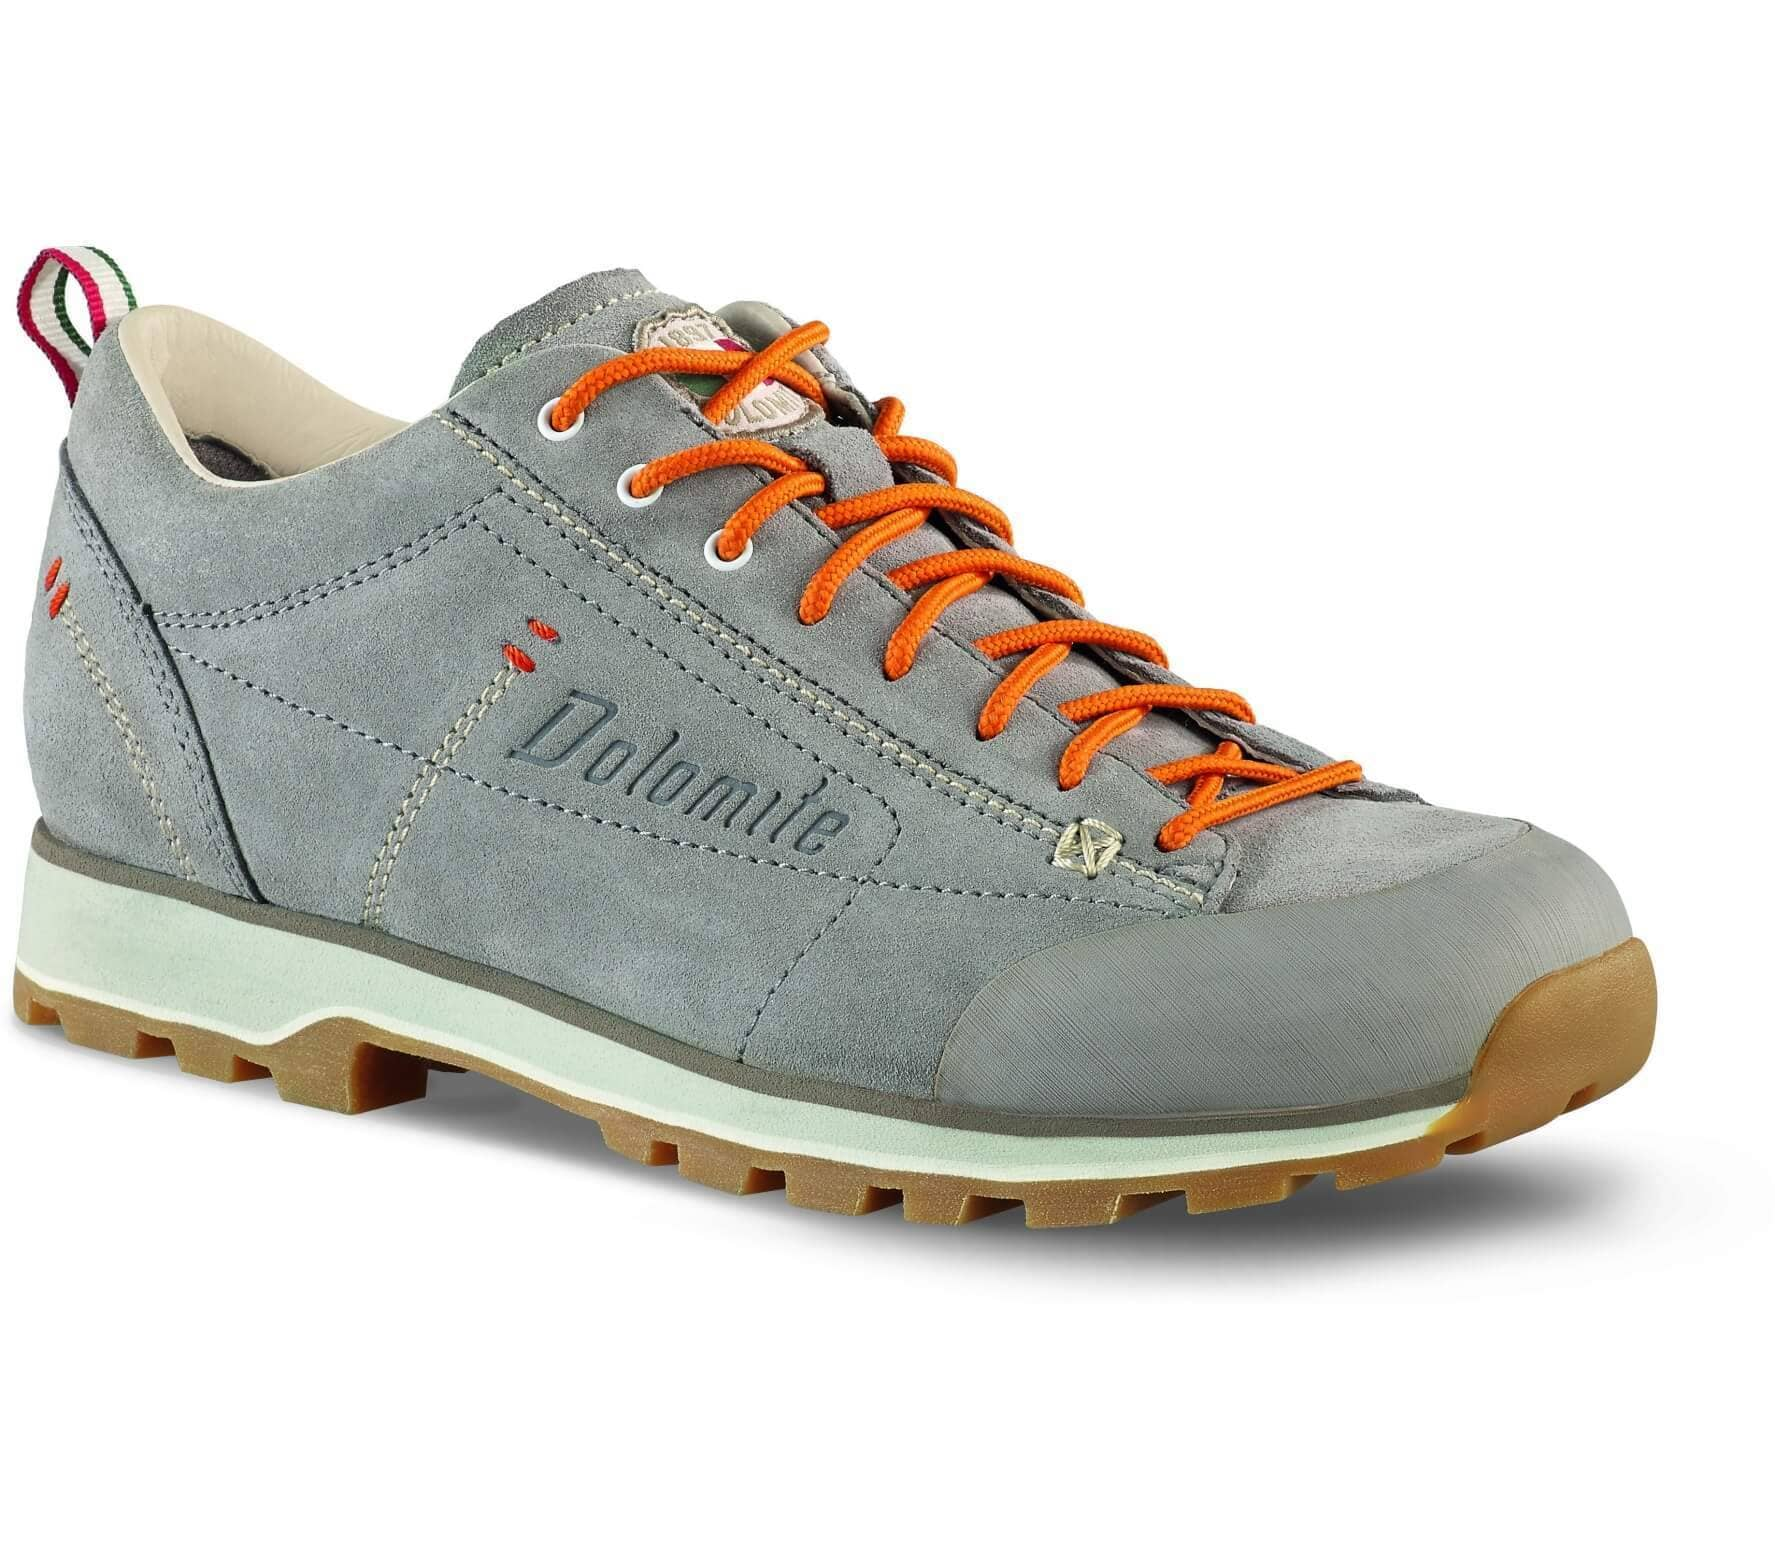 Dolomite - Cinquantaquattro Low women s hiking shoes (grey orange ... 14f055fee